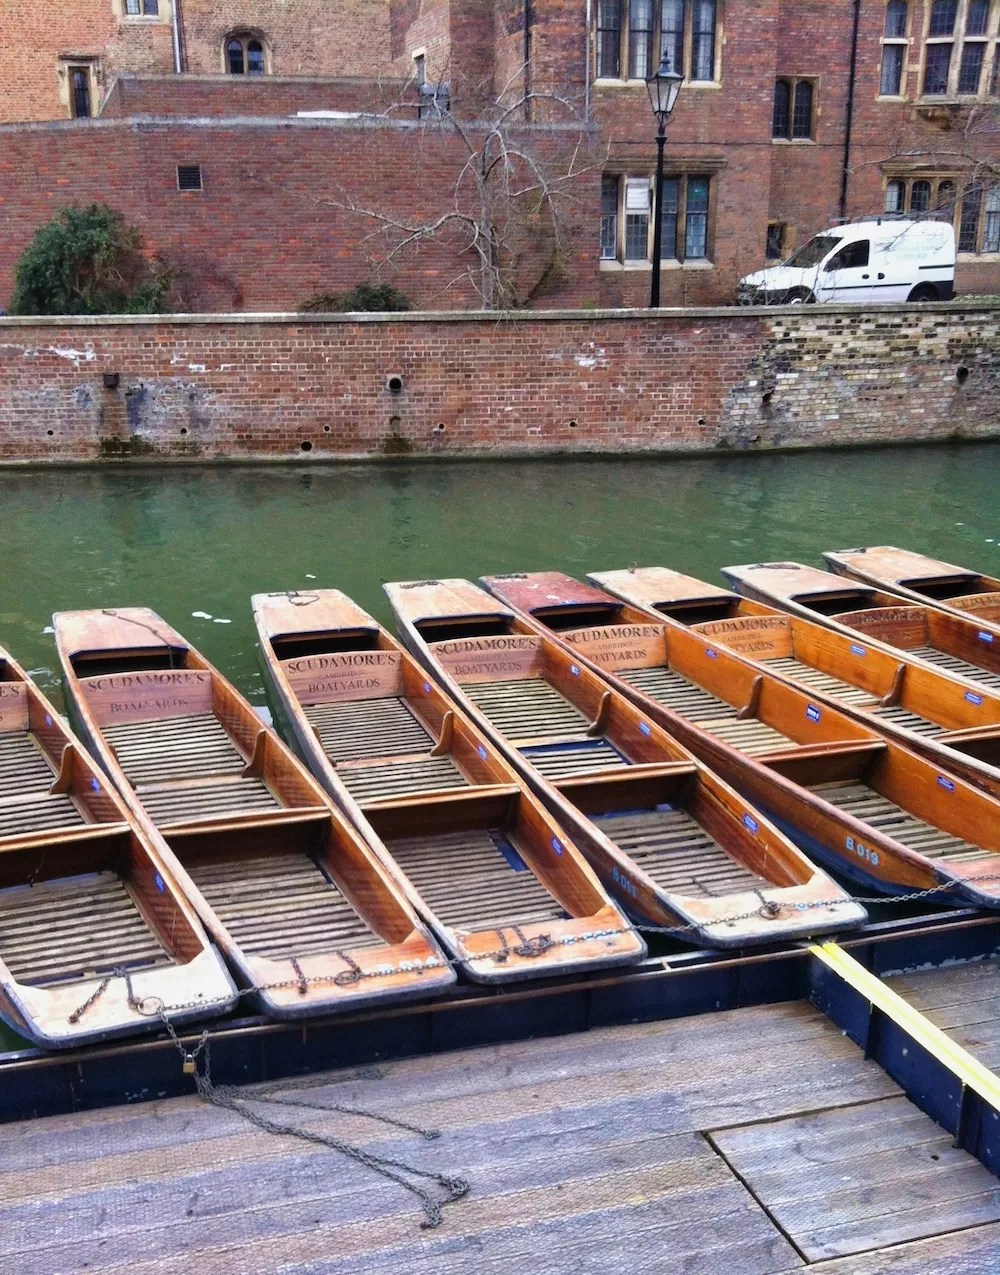 Cambridge Day Trip - Punting Boats